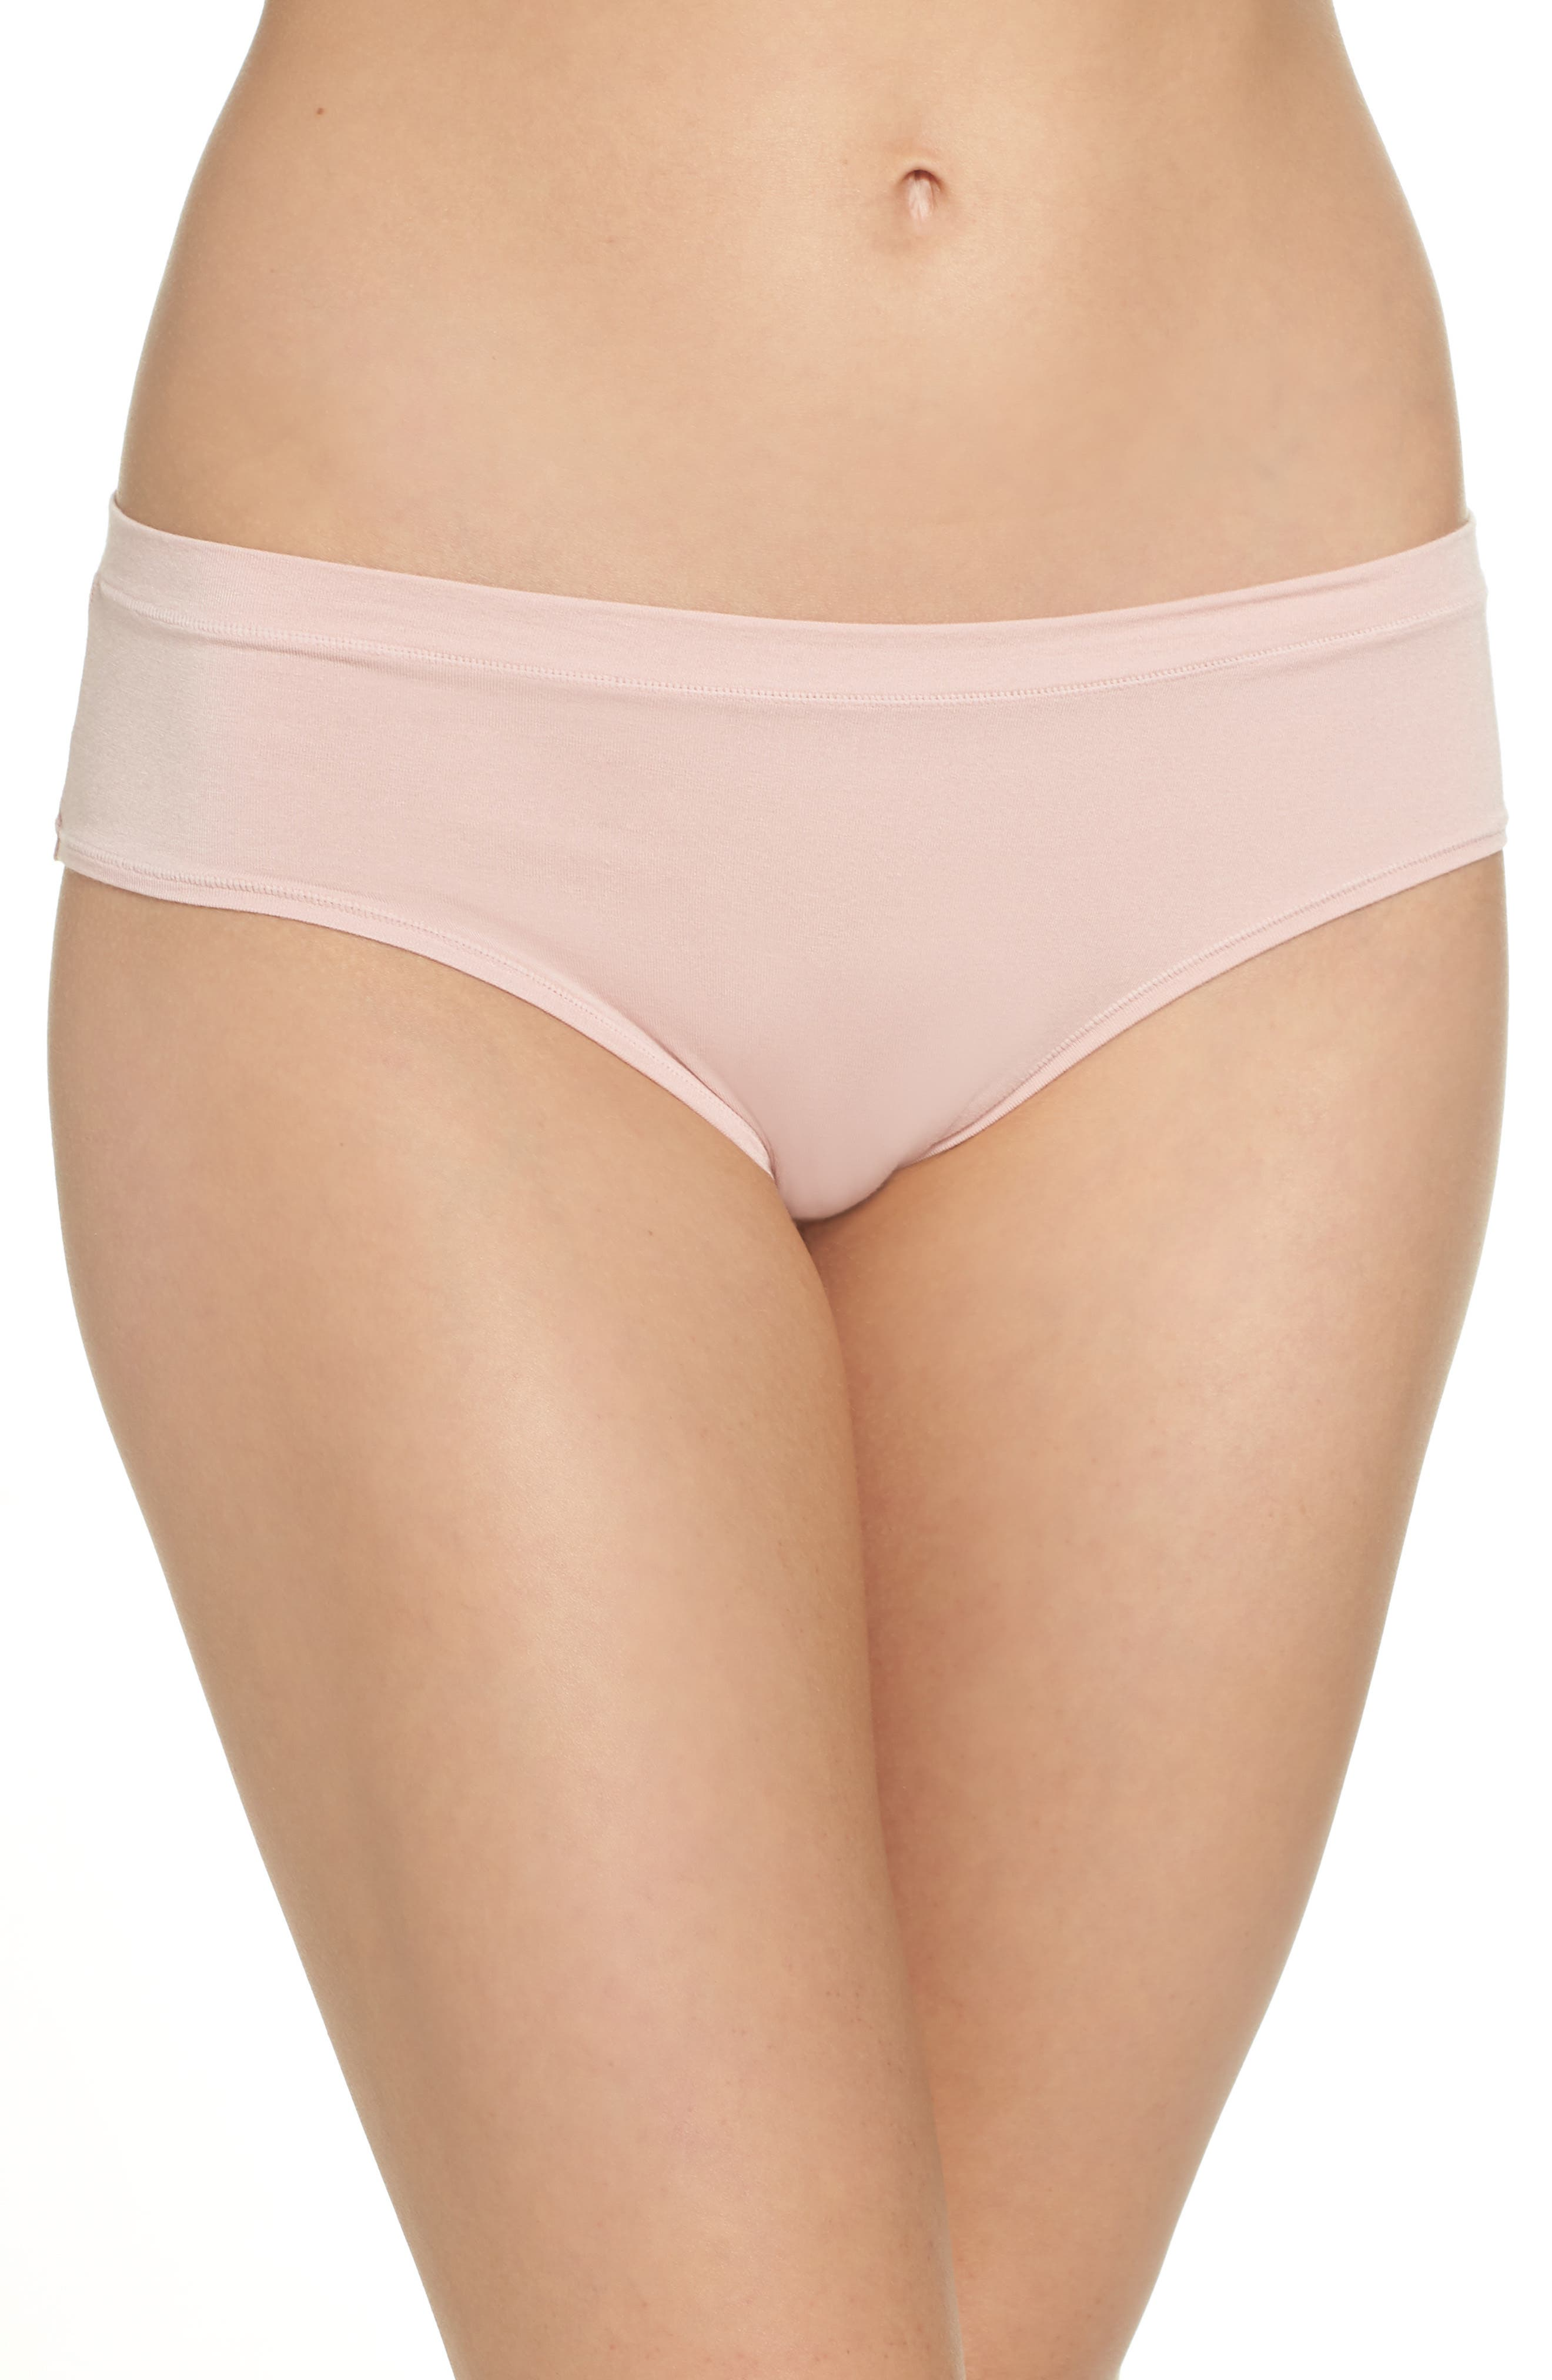 Hipster Briefs,                             Main thumbnail 1, color,                             Pink Silver